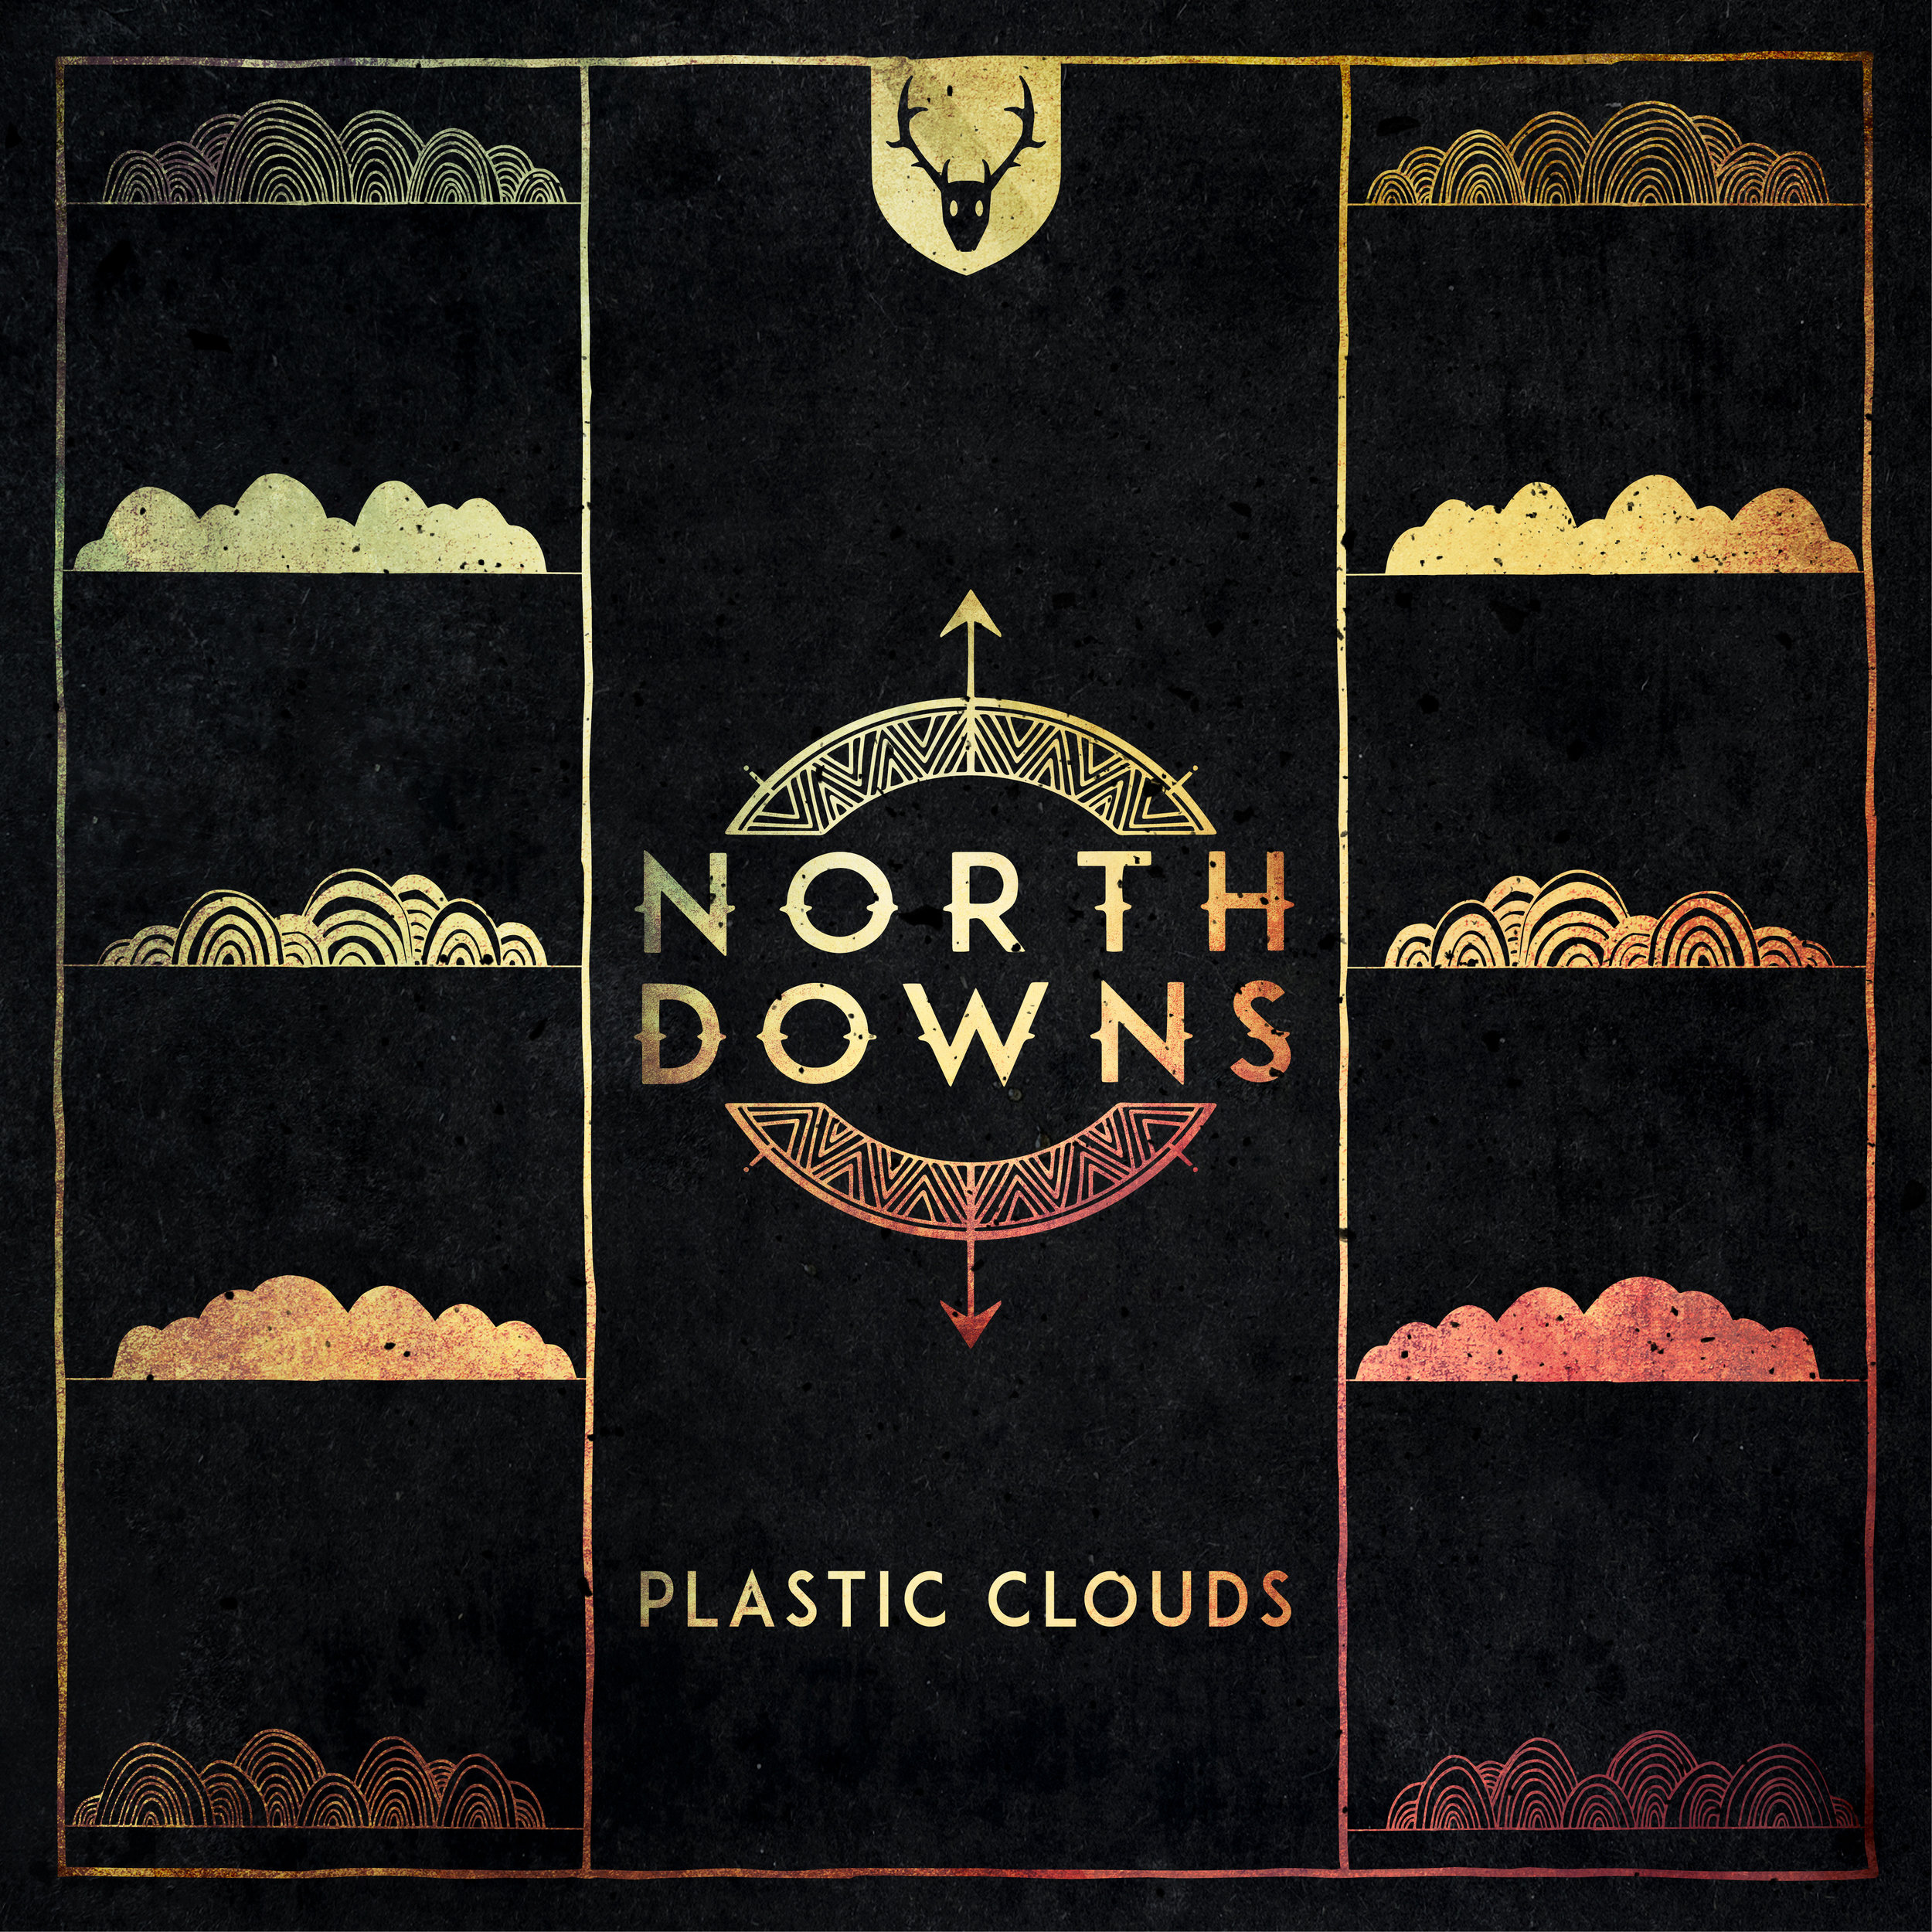 Plastic Clouds Final Artwork NEW EDIT FEB 2017-01.jpg